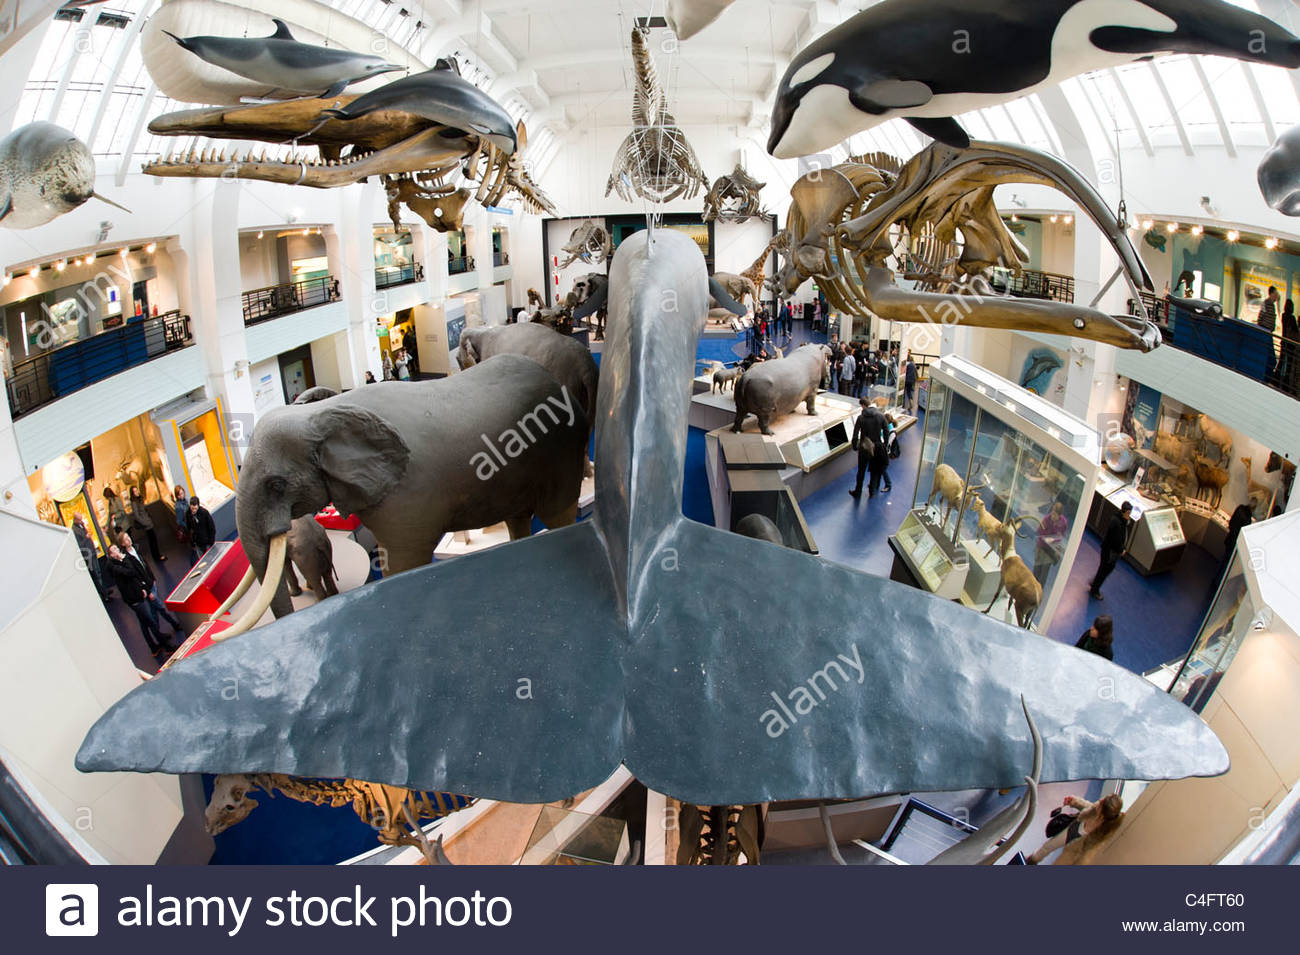 Tail fin of a life-size model of a blue whale in the Natural History Museum, London, UK - Stock Image